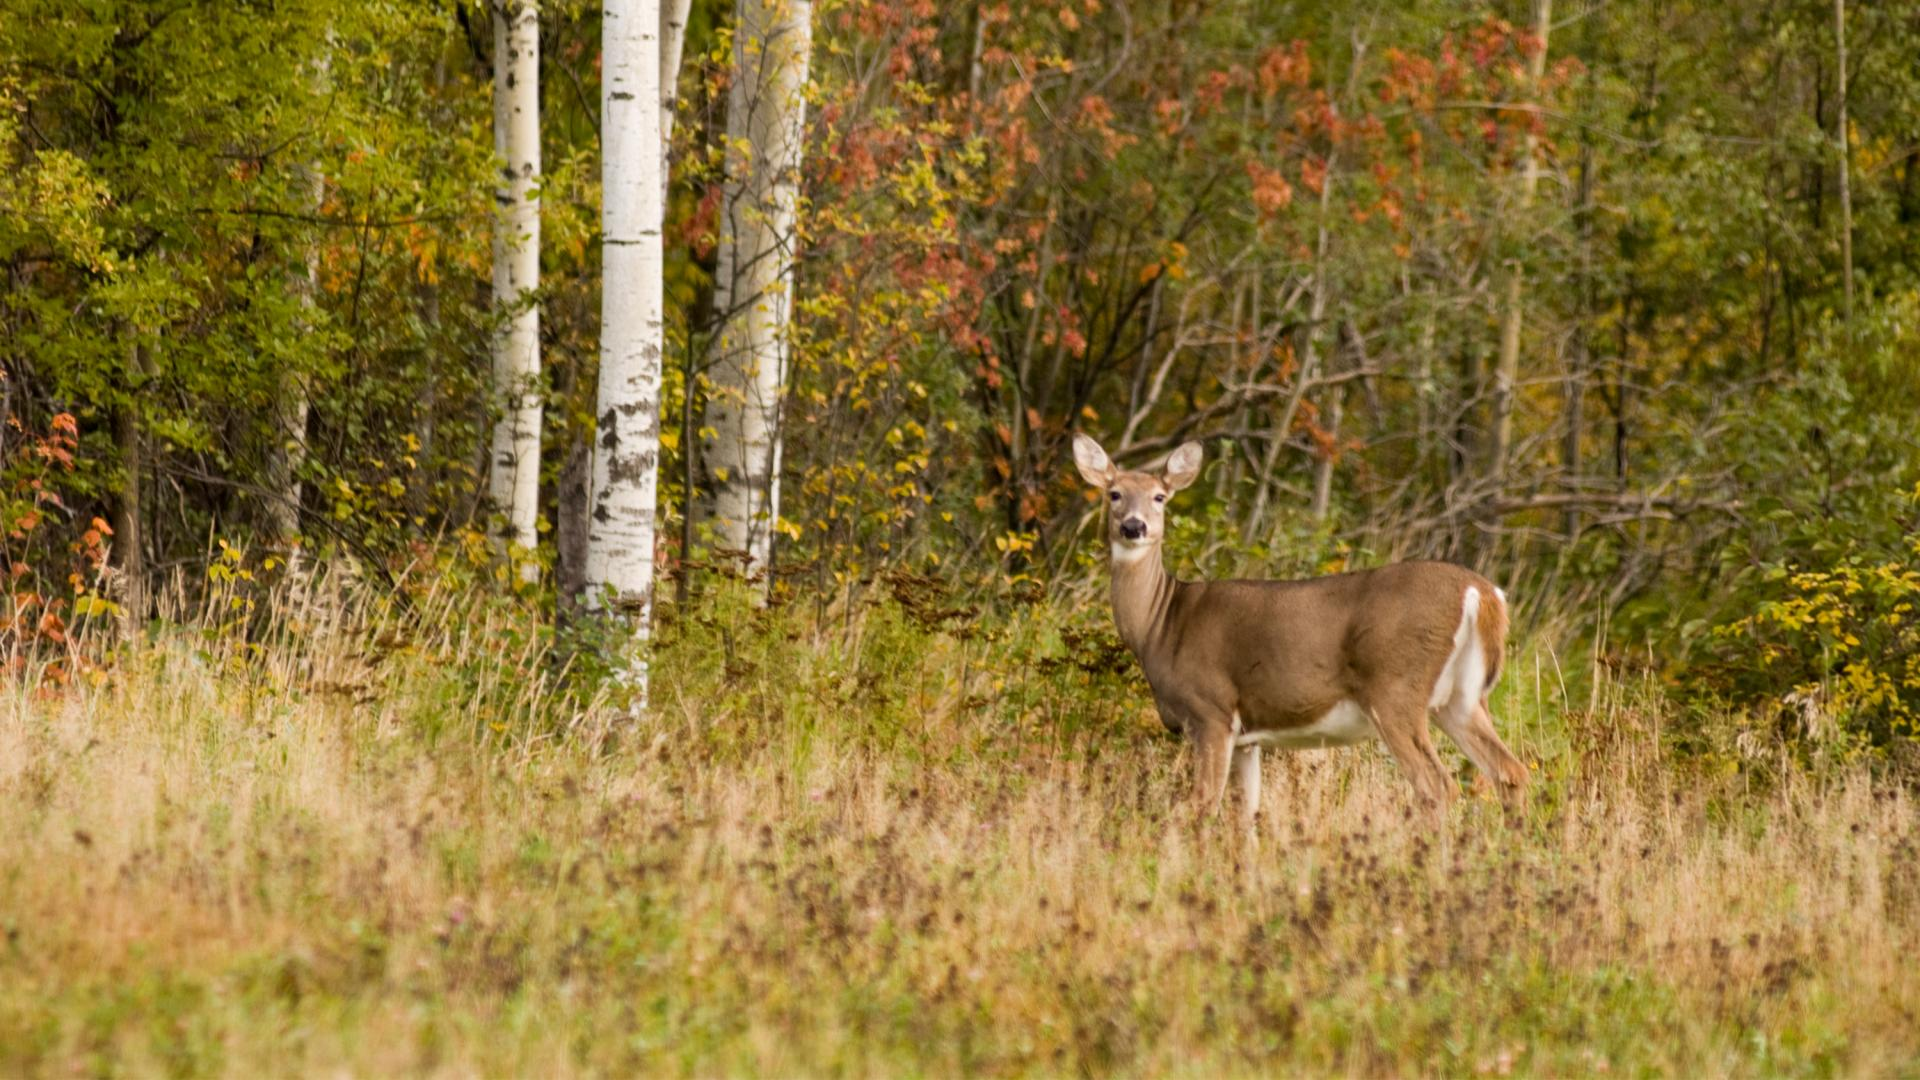 Deer at the Superior Forest Scenic Byway